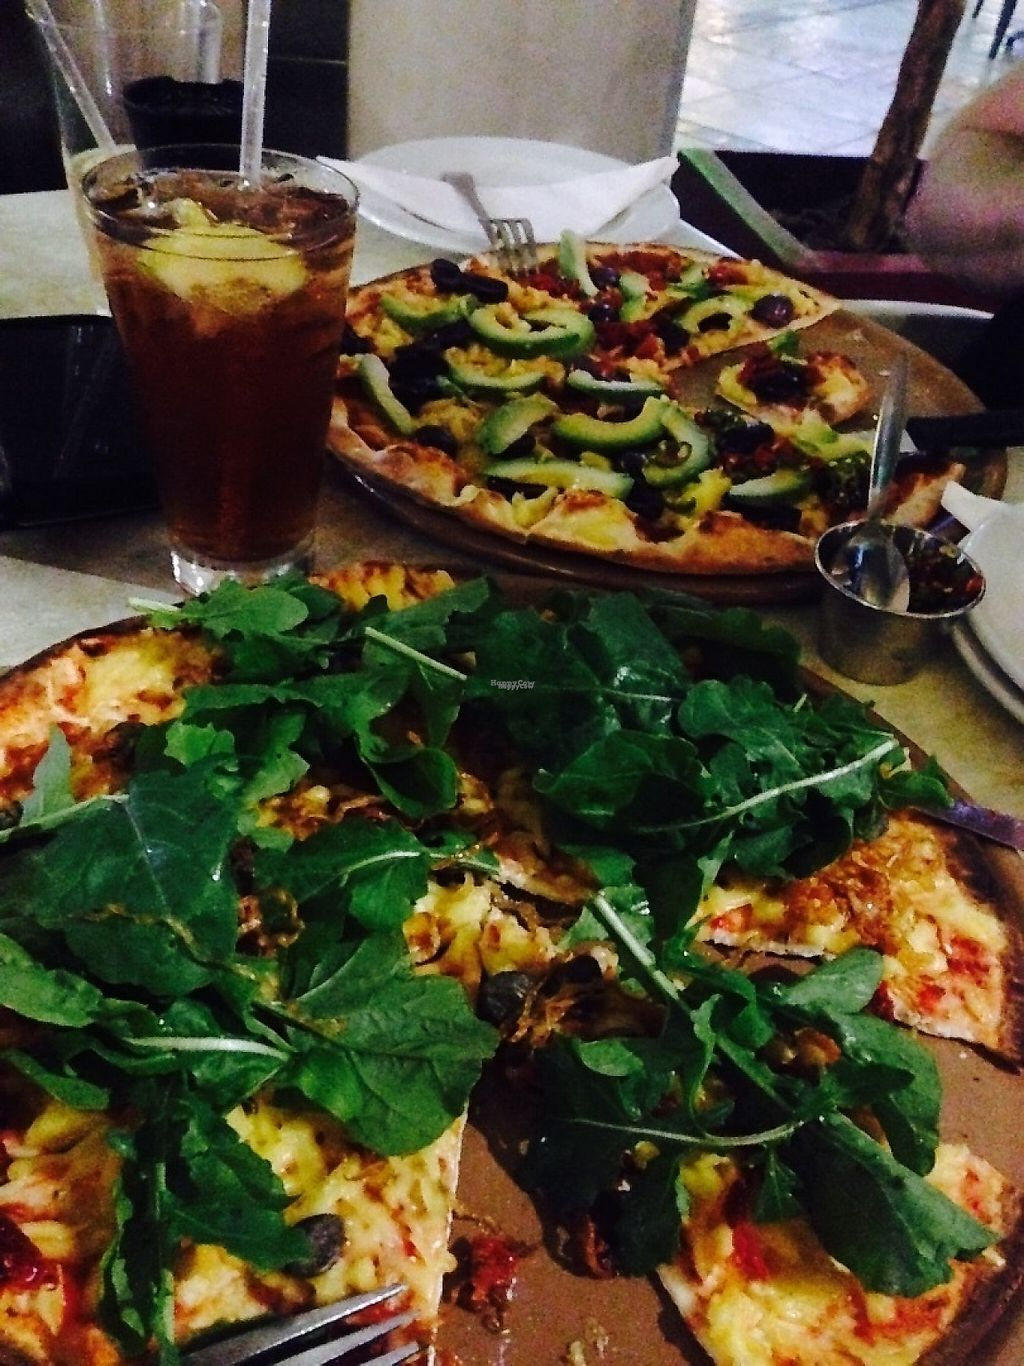 "Photo of Col' Cacchio Pizzeria  by <a href=""/members/profile/Nicole%20Hein"">Nicole Hein</a> <br/>Col'Cacchio vegan Margarita with added toppings <br/> November 24, 2016  - <a href='/contact/abuse/image/83092/193871'>Report</a>"